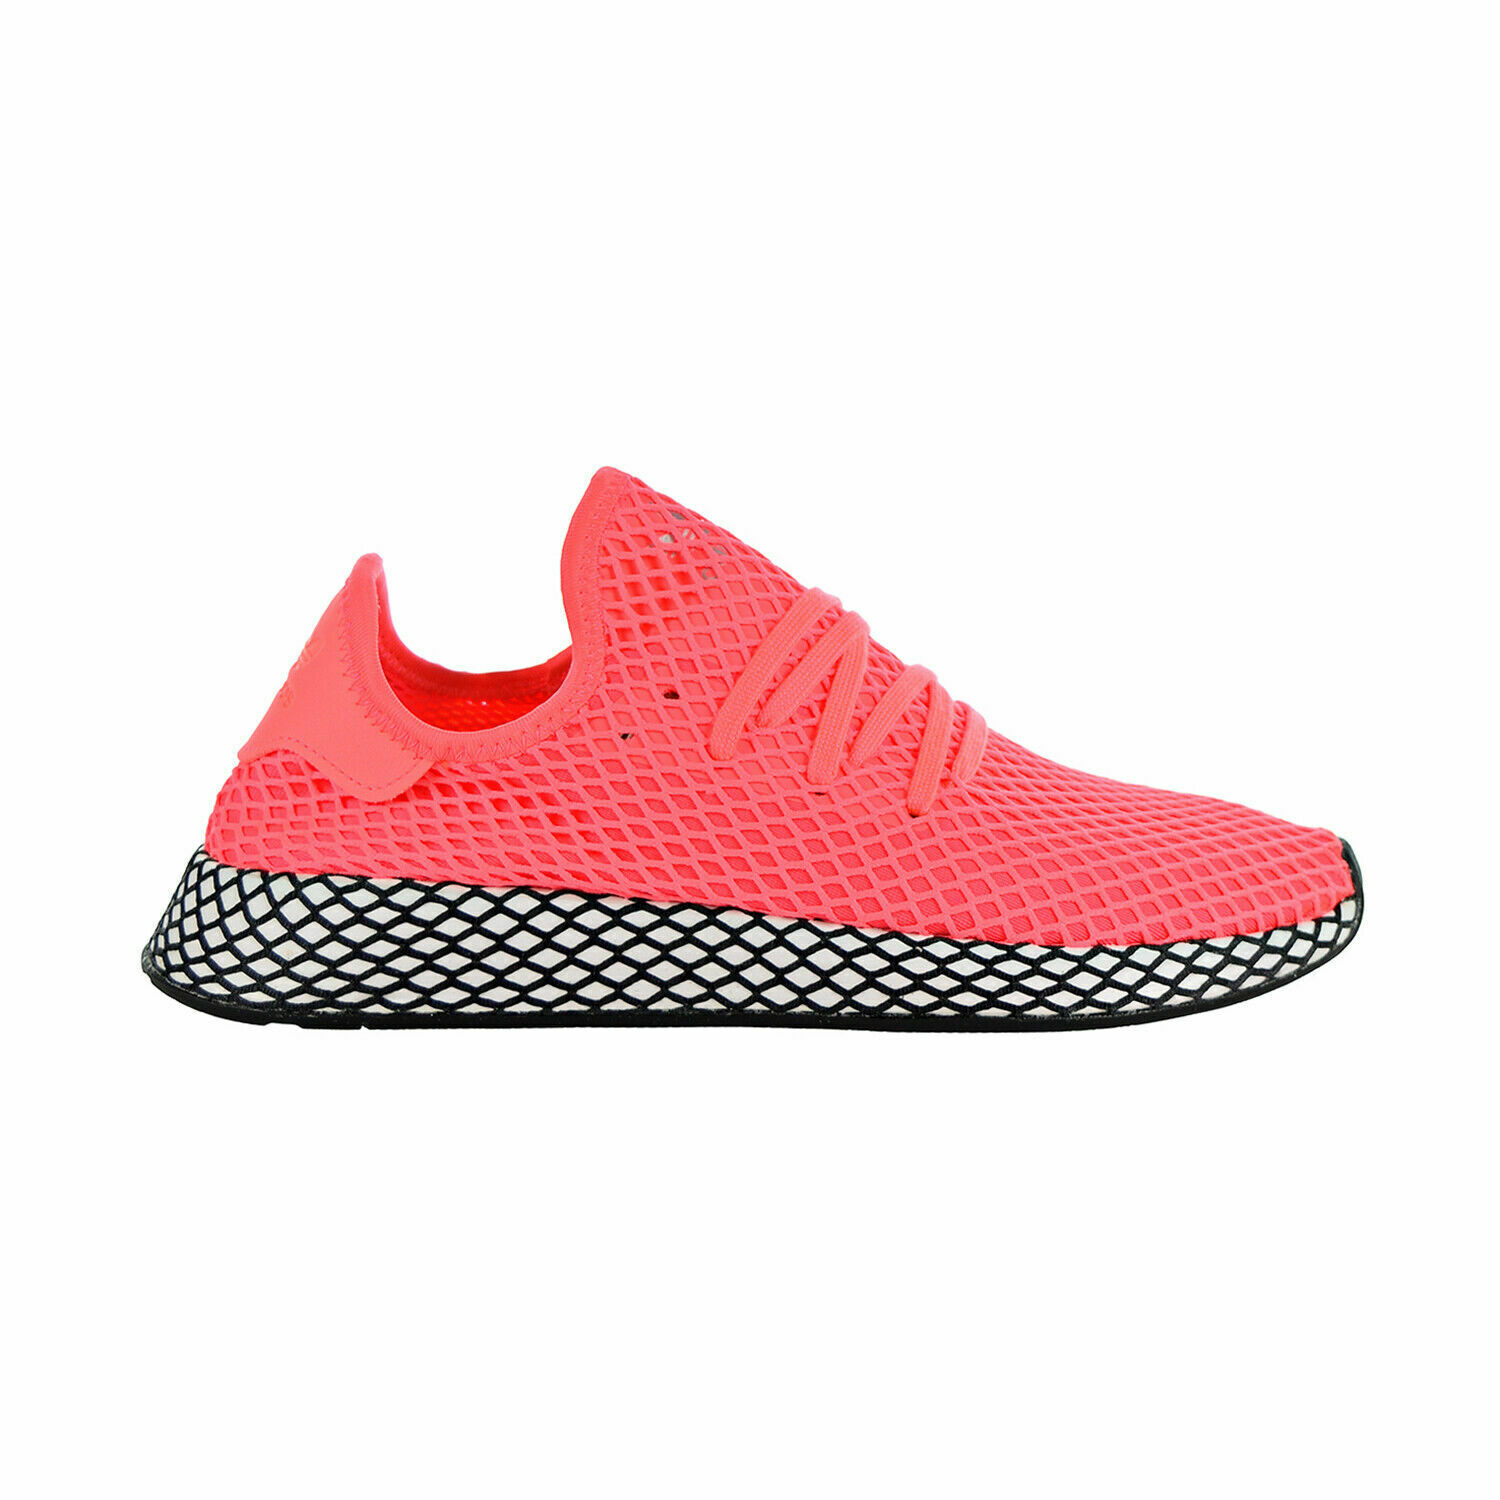 Adidas DEERUPT RUNNER Turbo Turbo Black - (B41769) Men's Size 10.5 NEW WITH TAGS